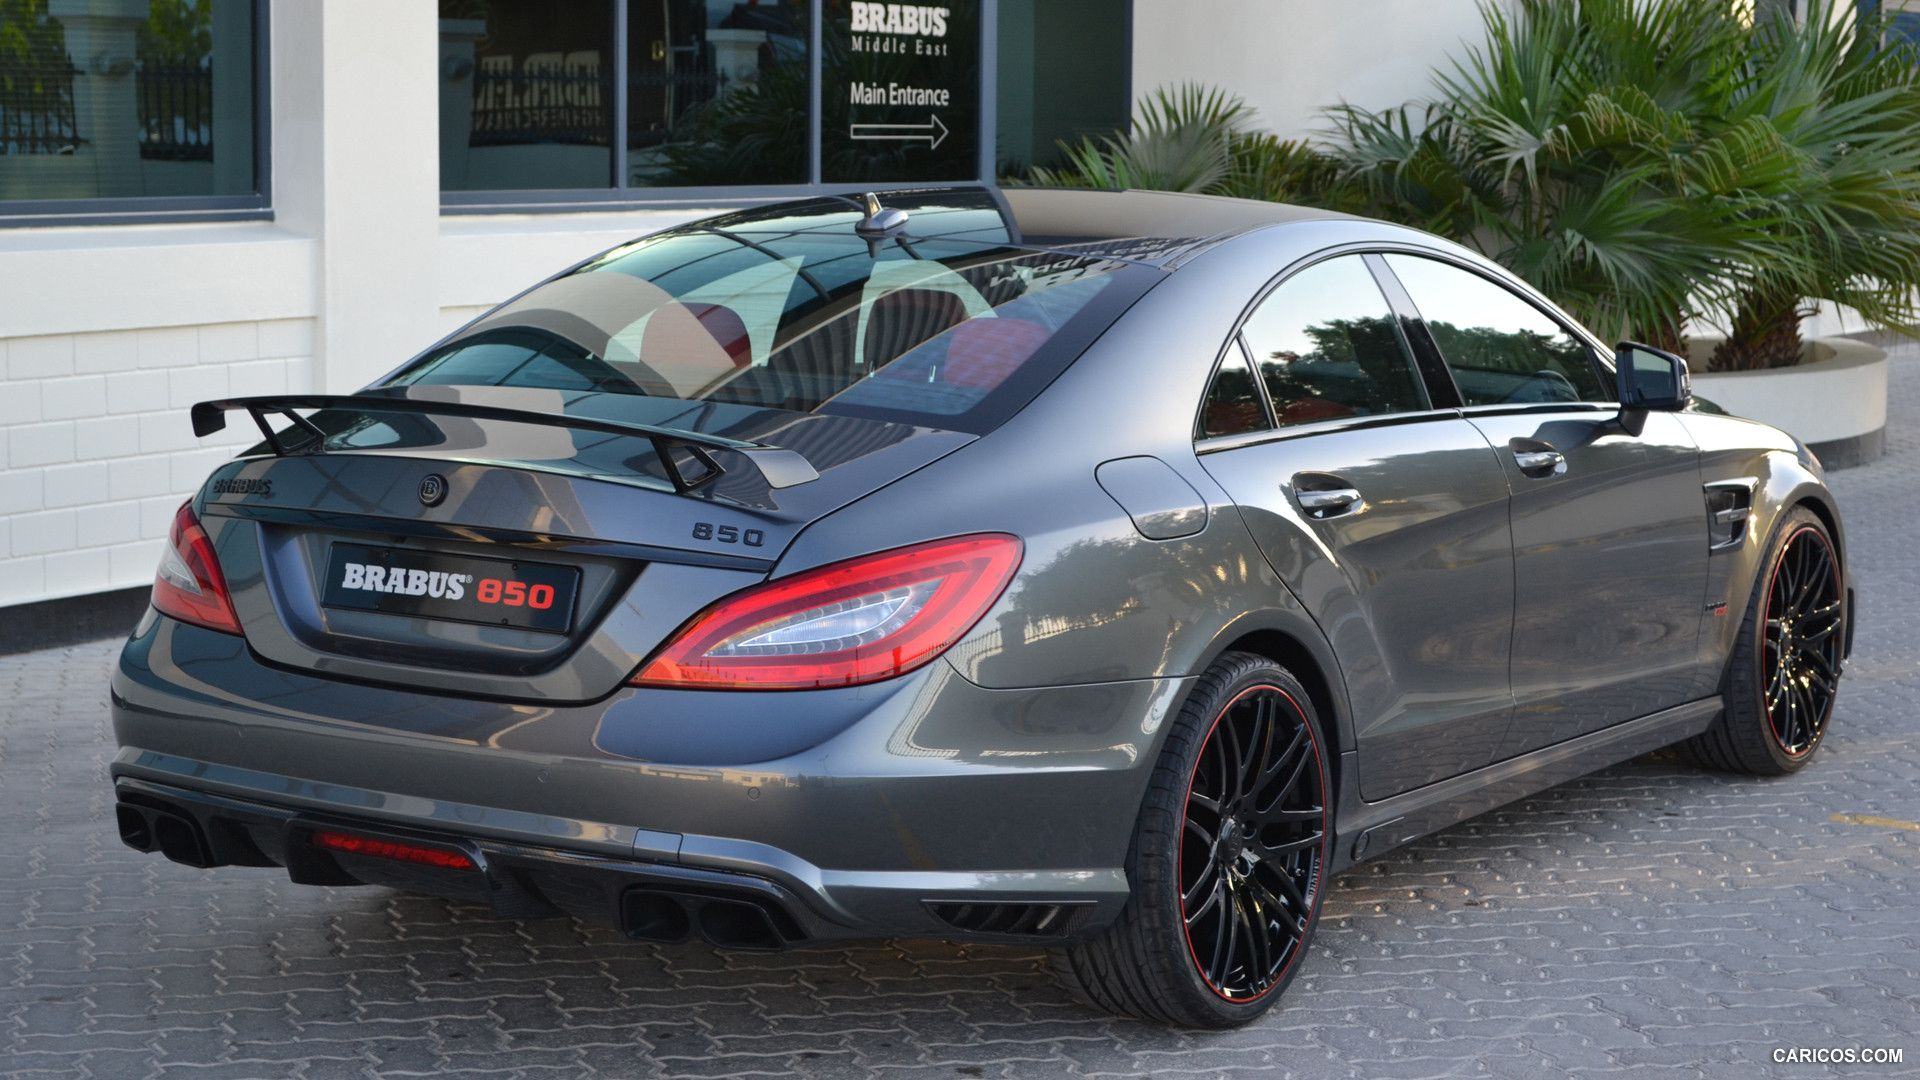 2014 Brabus 850 6 0 Biturbo Based On Mercedes Benz Cls63 Amg